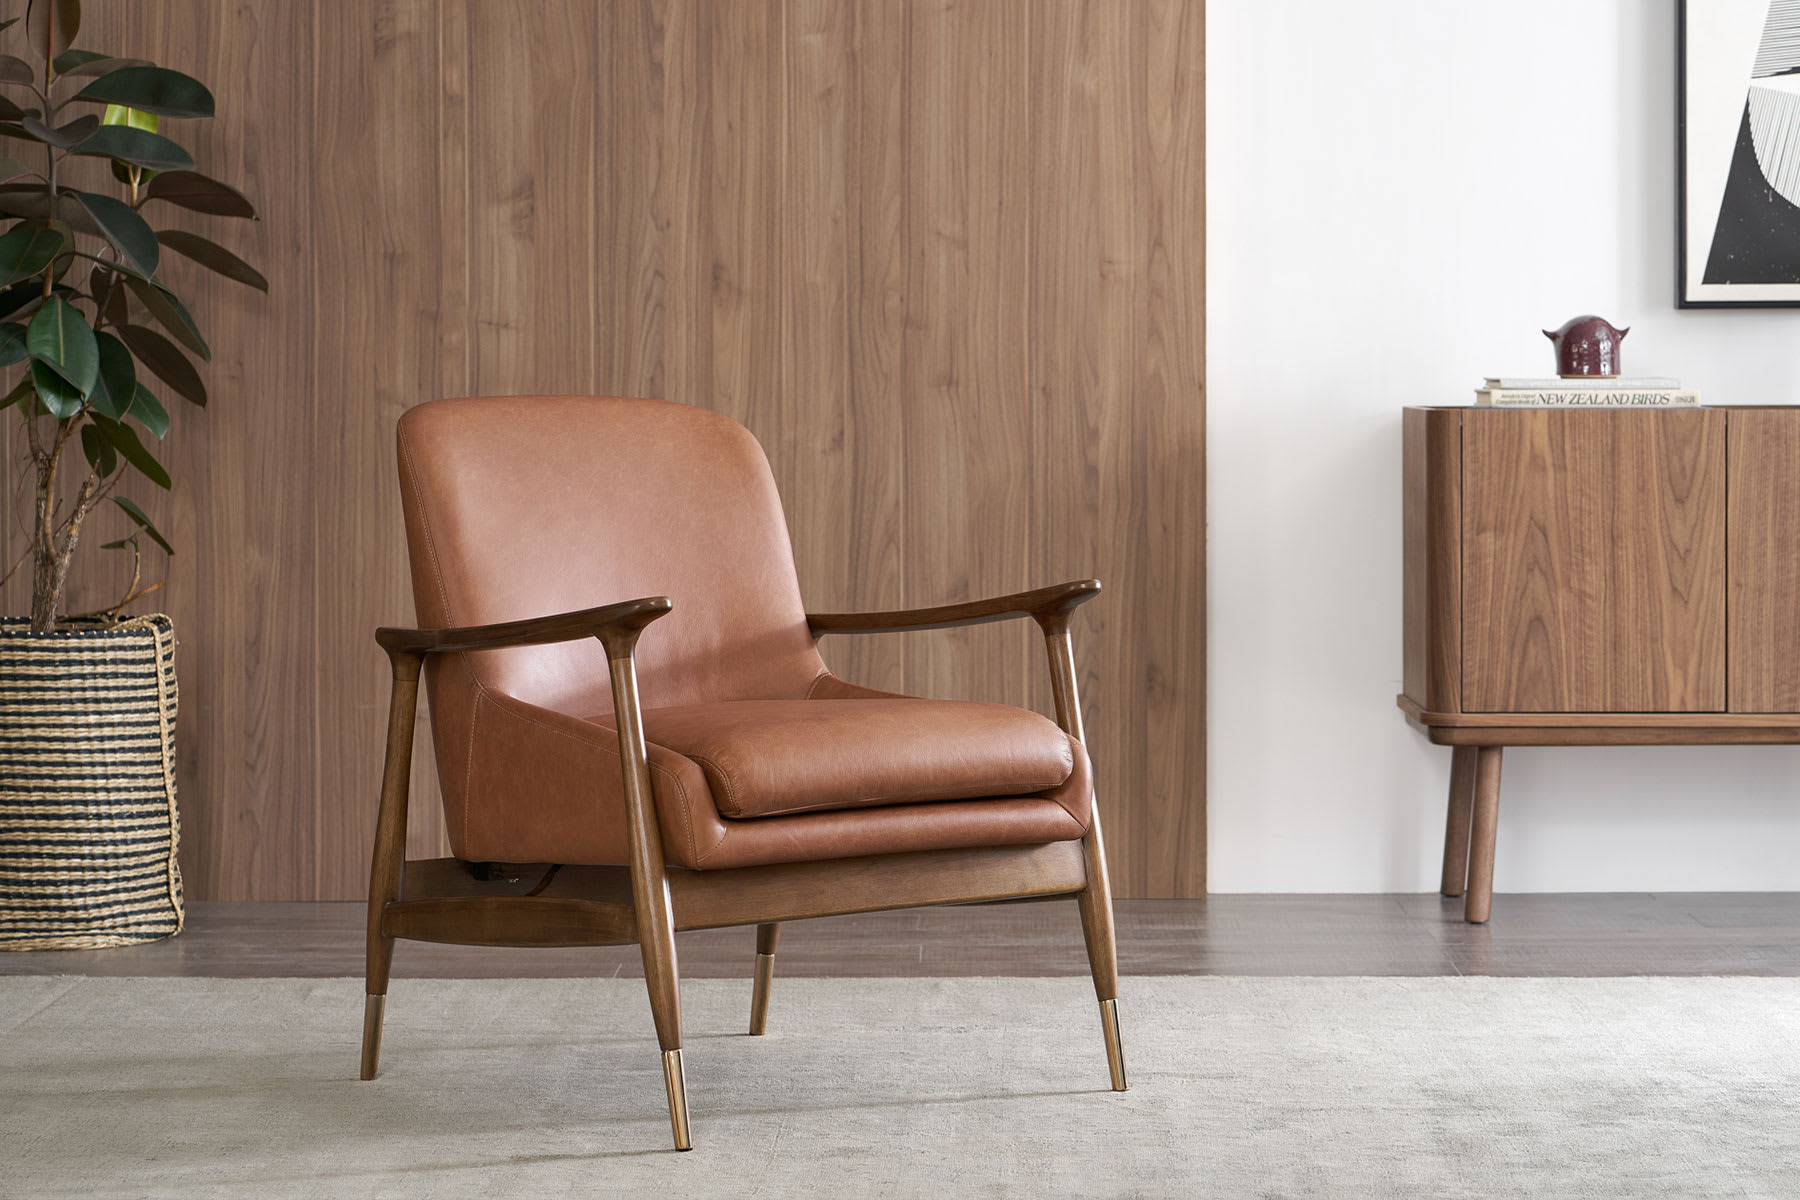 brown leather armchair in mid-mordern century style